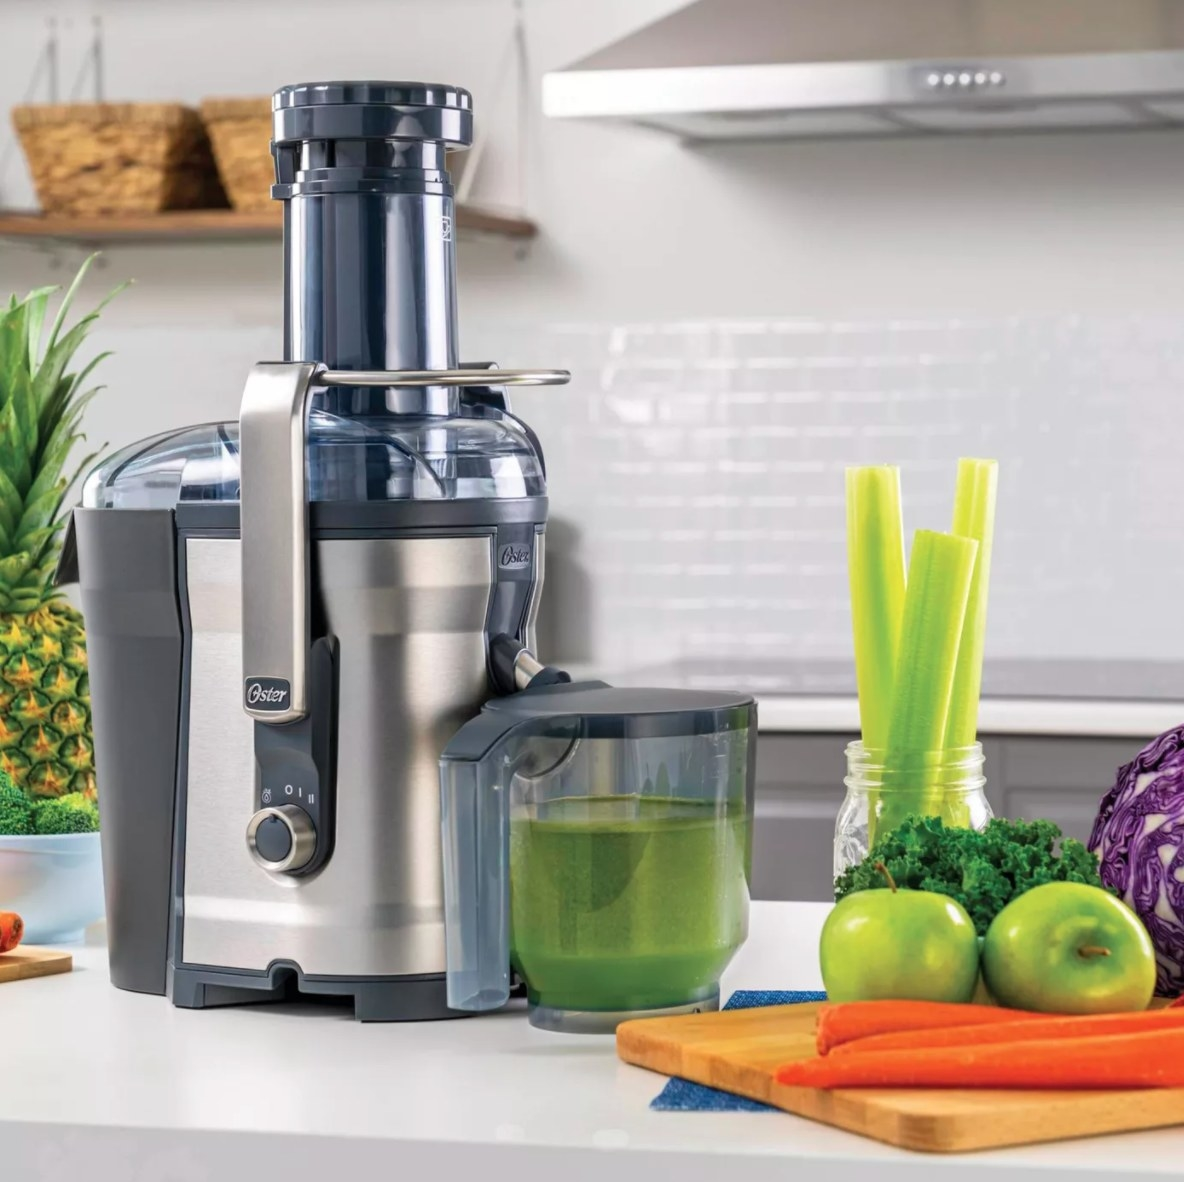 The self-cleaning professional juice extractor